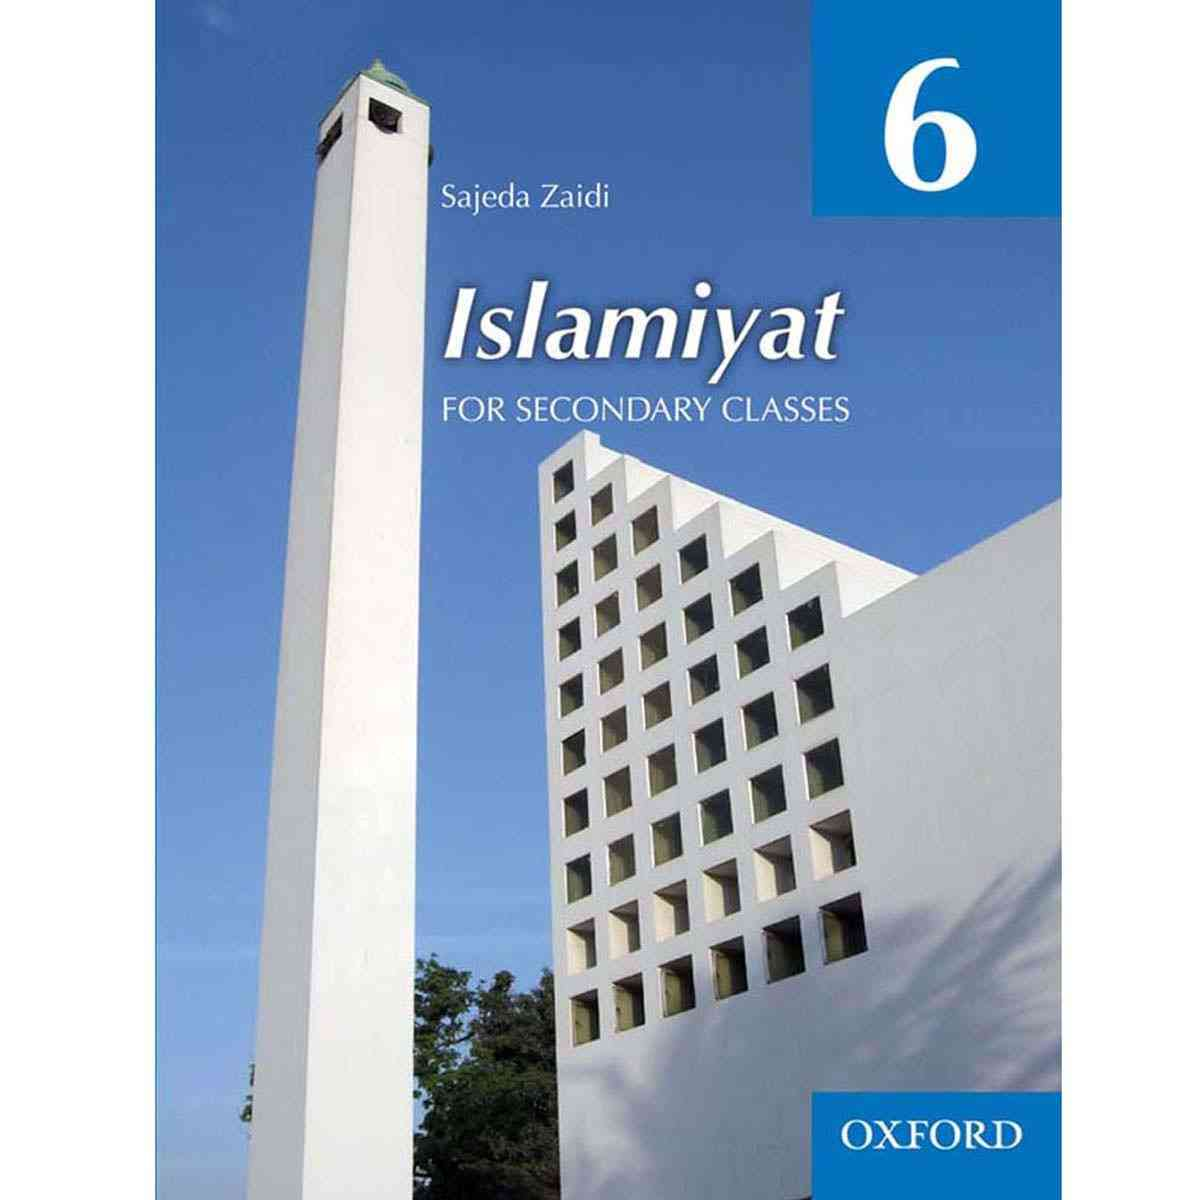 Oxford Books Islamiyat Book 6